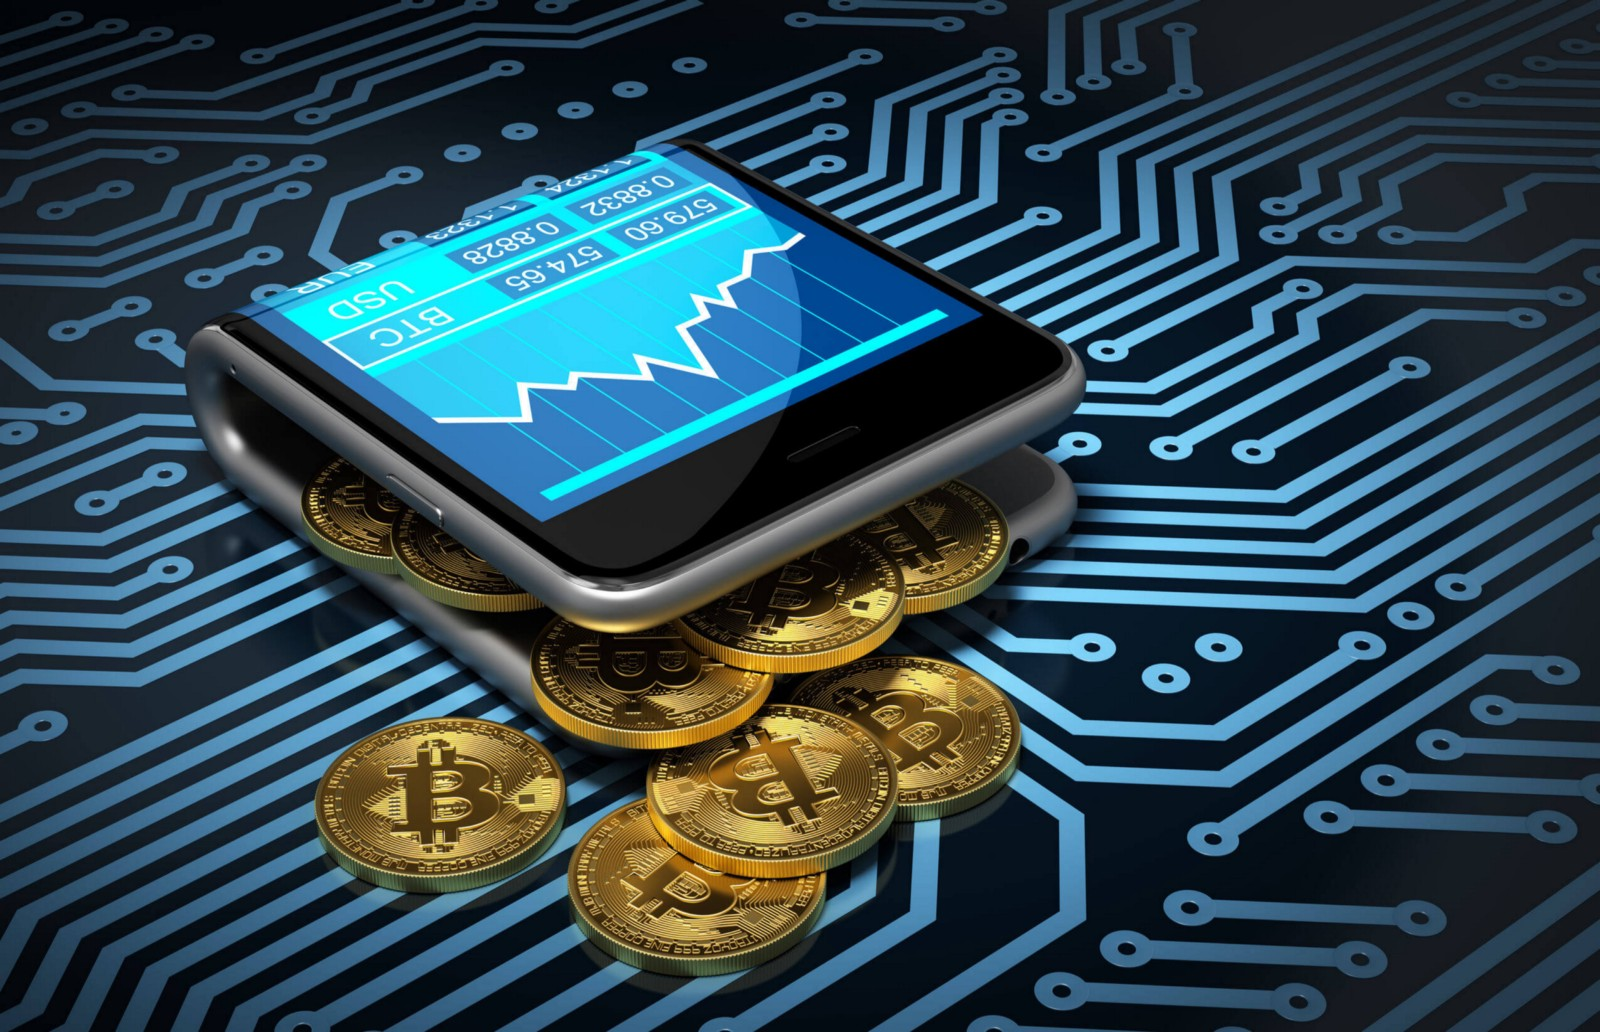 /top-5-bitcoin-hardware-wallets-of-2017-2018-altcoin-supported-3a1dac5884b1 feature image